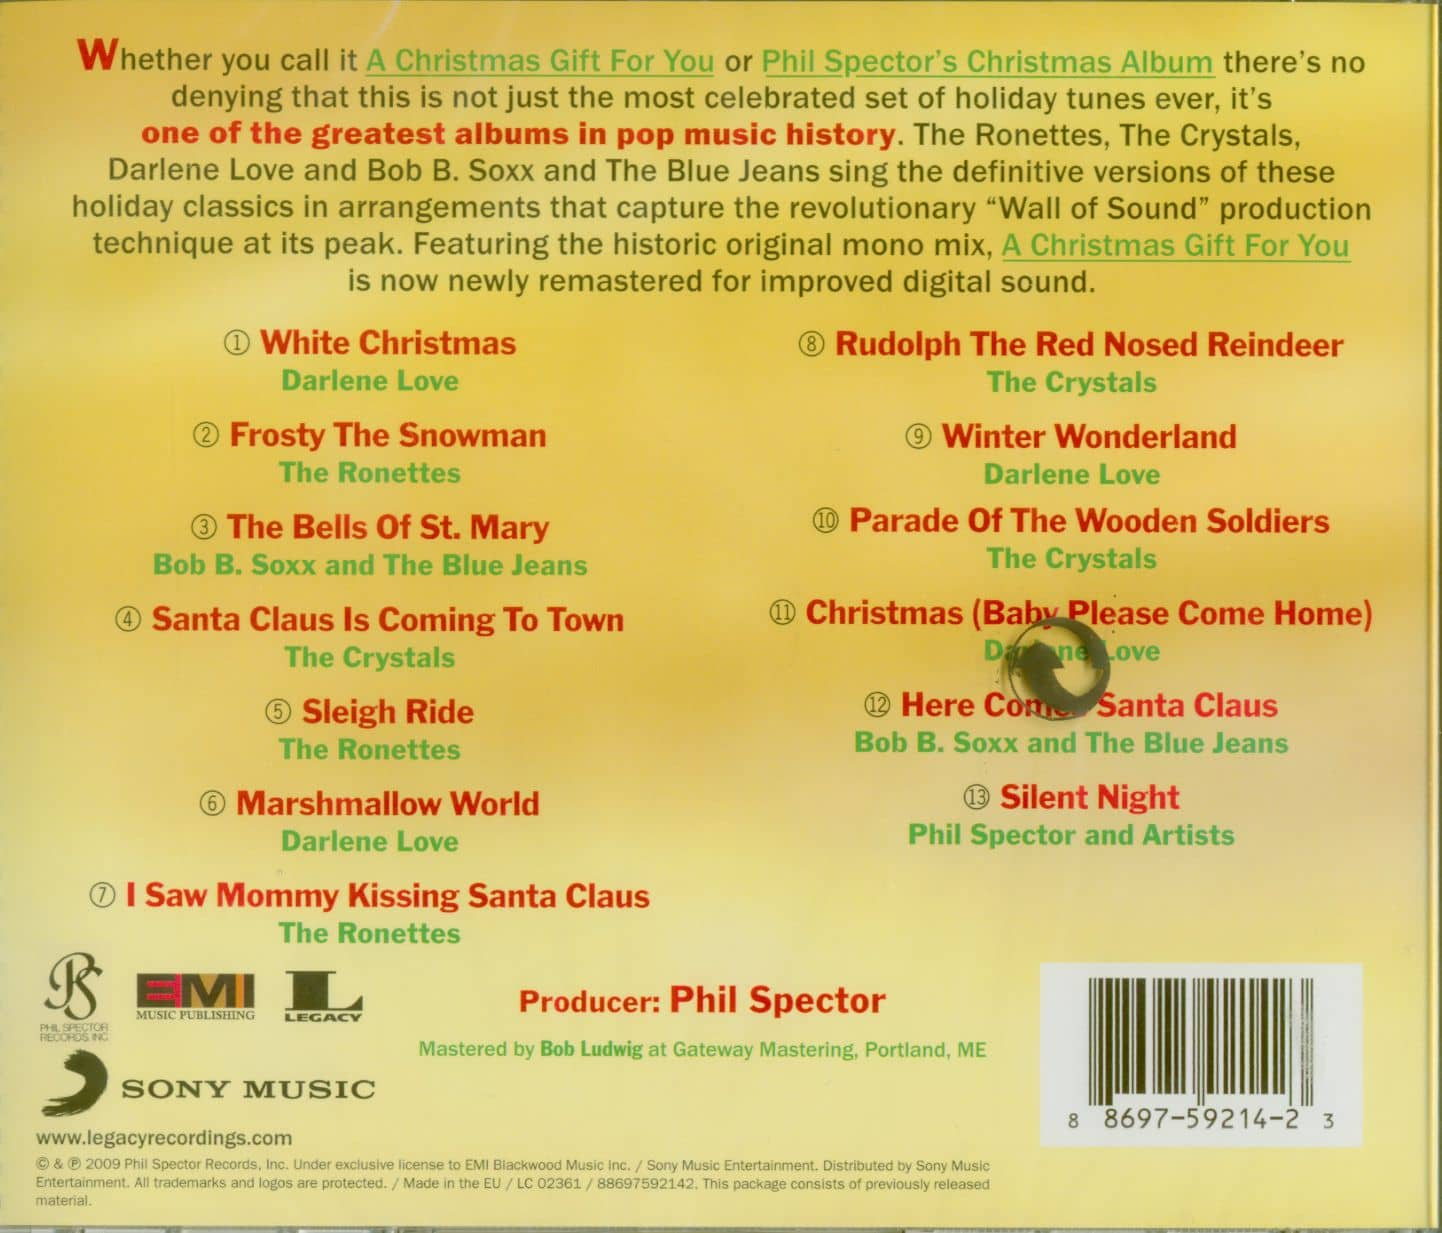 Various CD: A Christmas Gift For You From Phil Spector (CD) - Bear Family Records